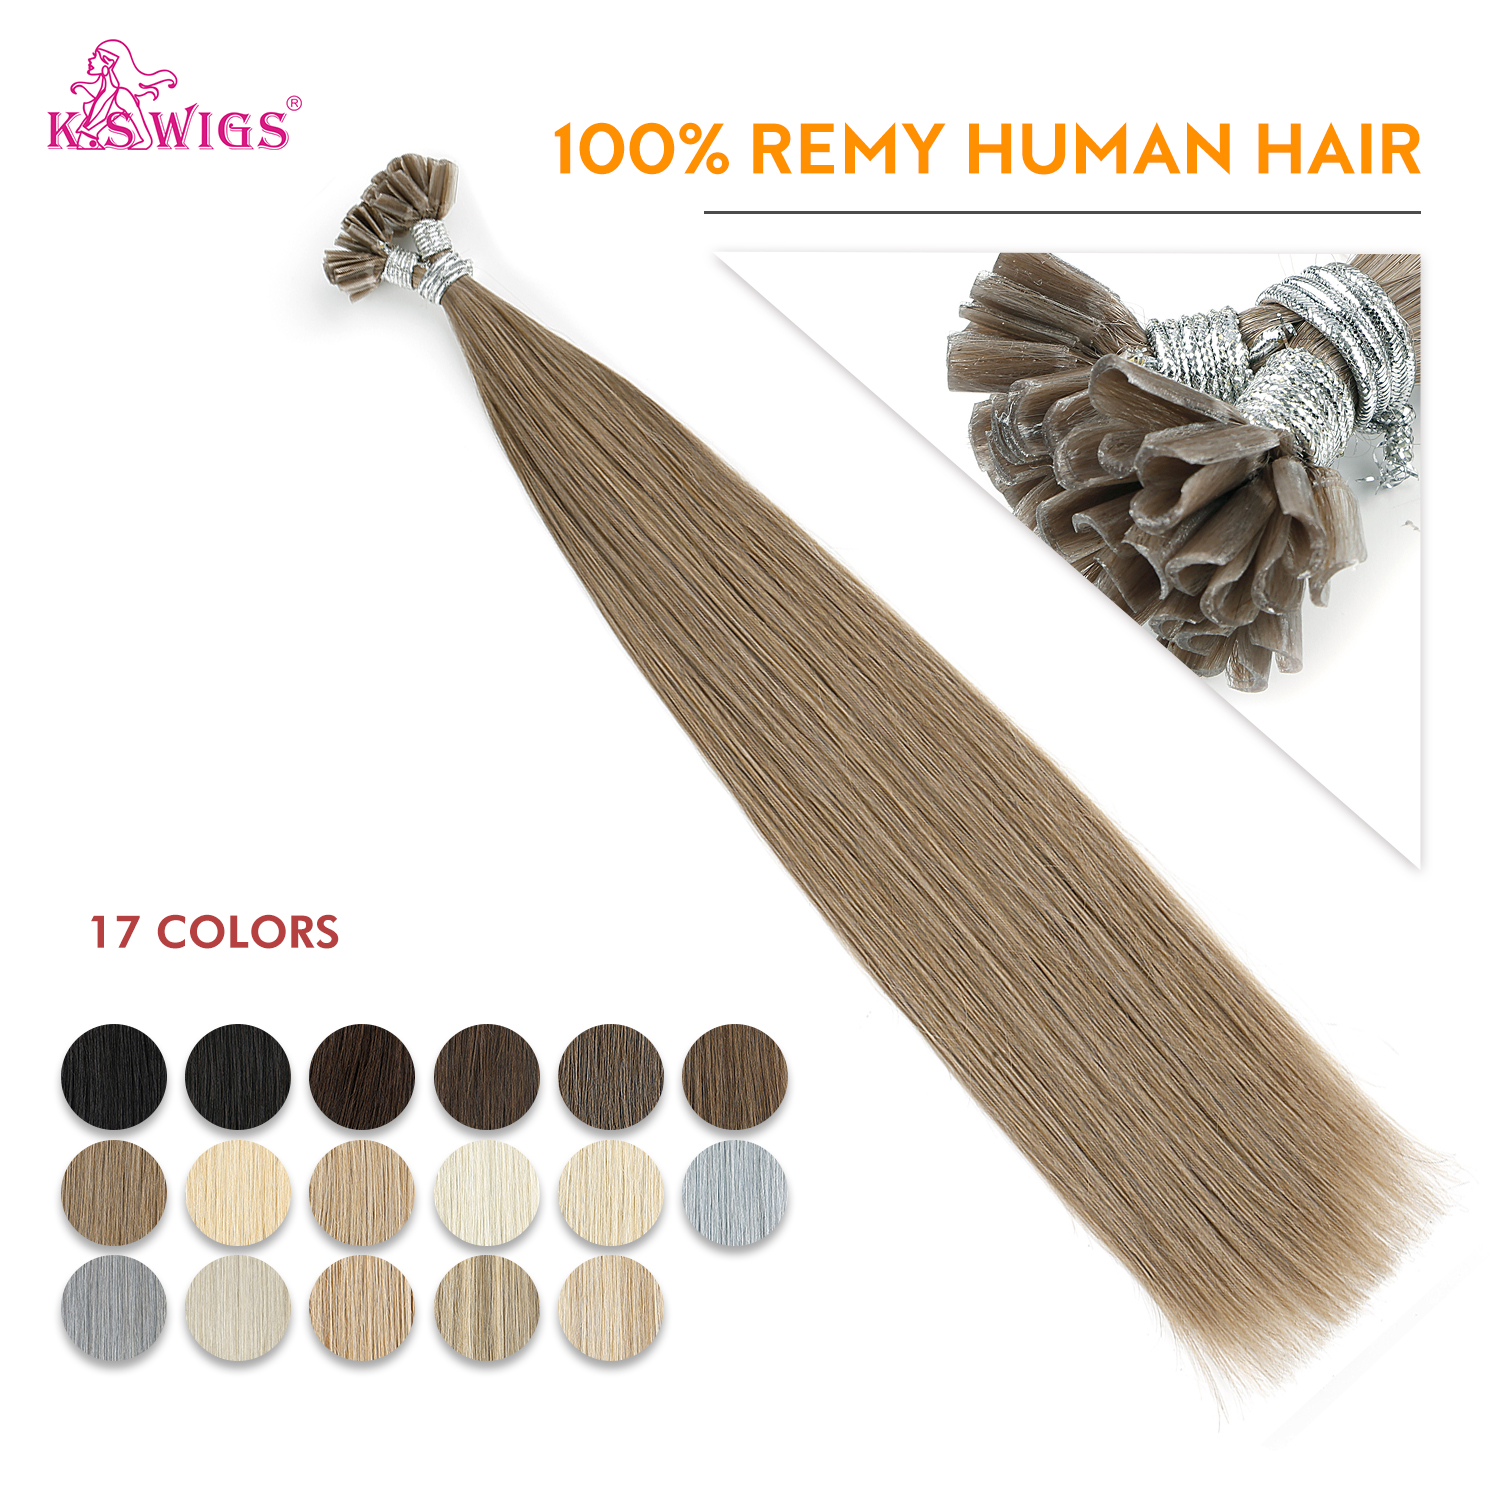 K.s Wigs 16'' 20'' 24'' 28'' Straight Remy Nail U Tip Human Hair Extensions Pre Bonded Keratin Capsules Fusion Human Hair